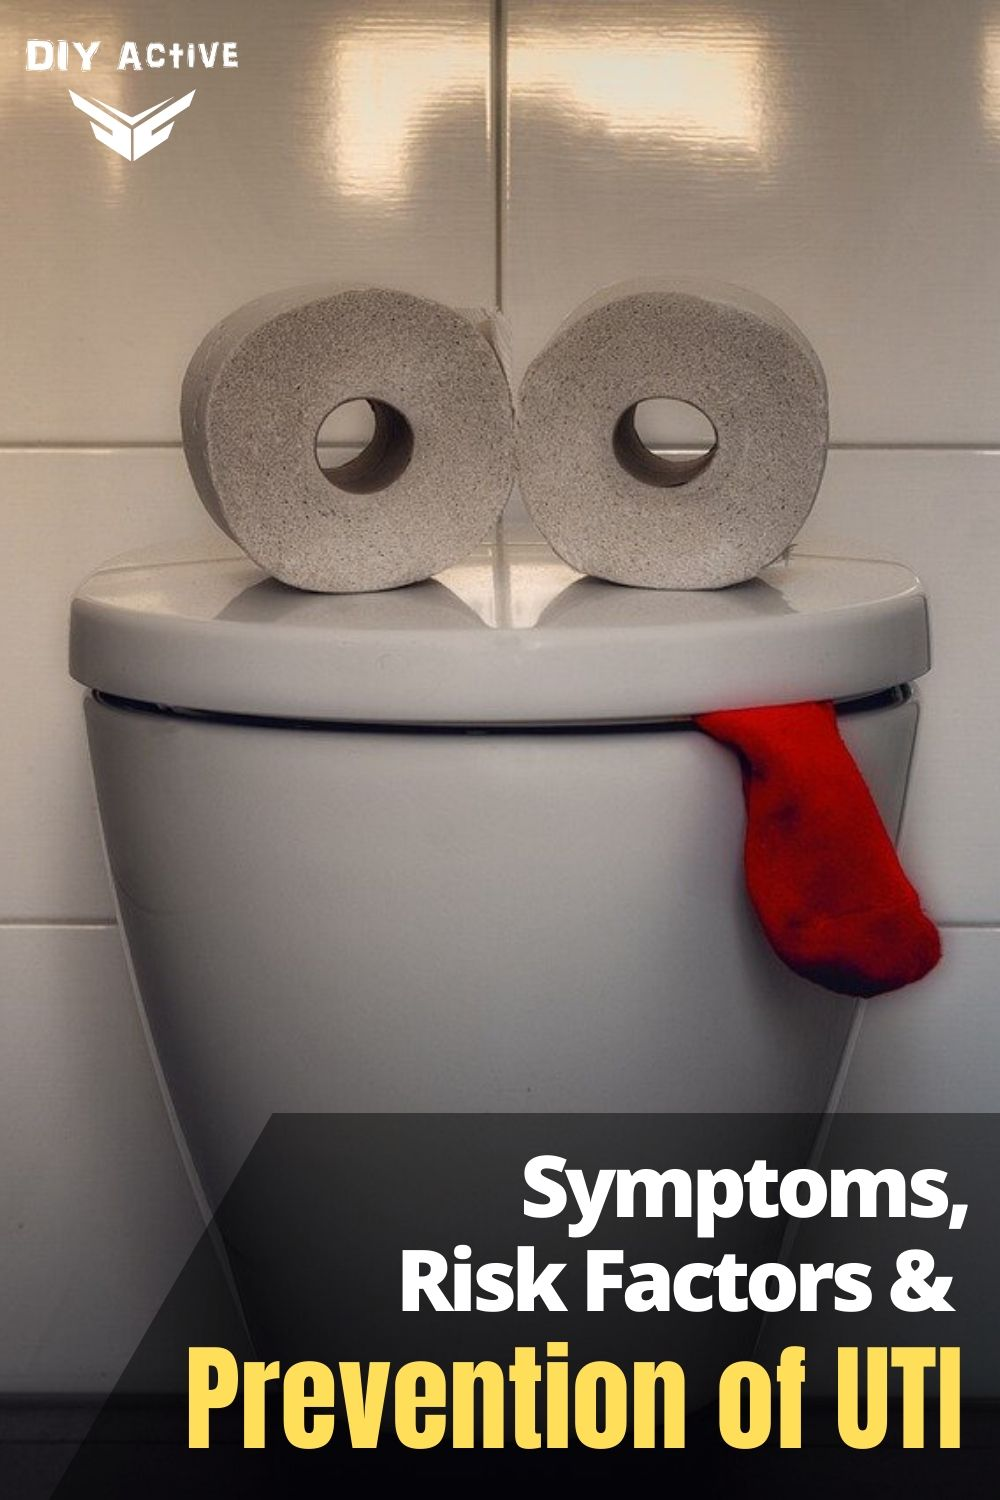 Symptoms, Risk Factors & Prevention of UTI (Urinary Tract Infection)